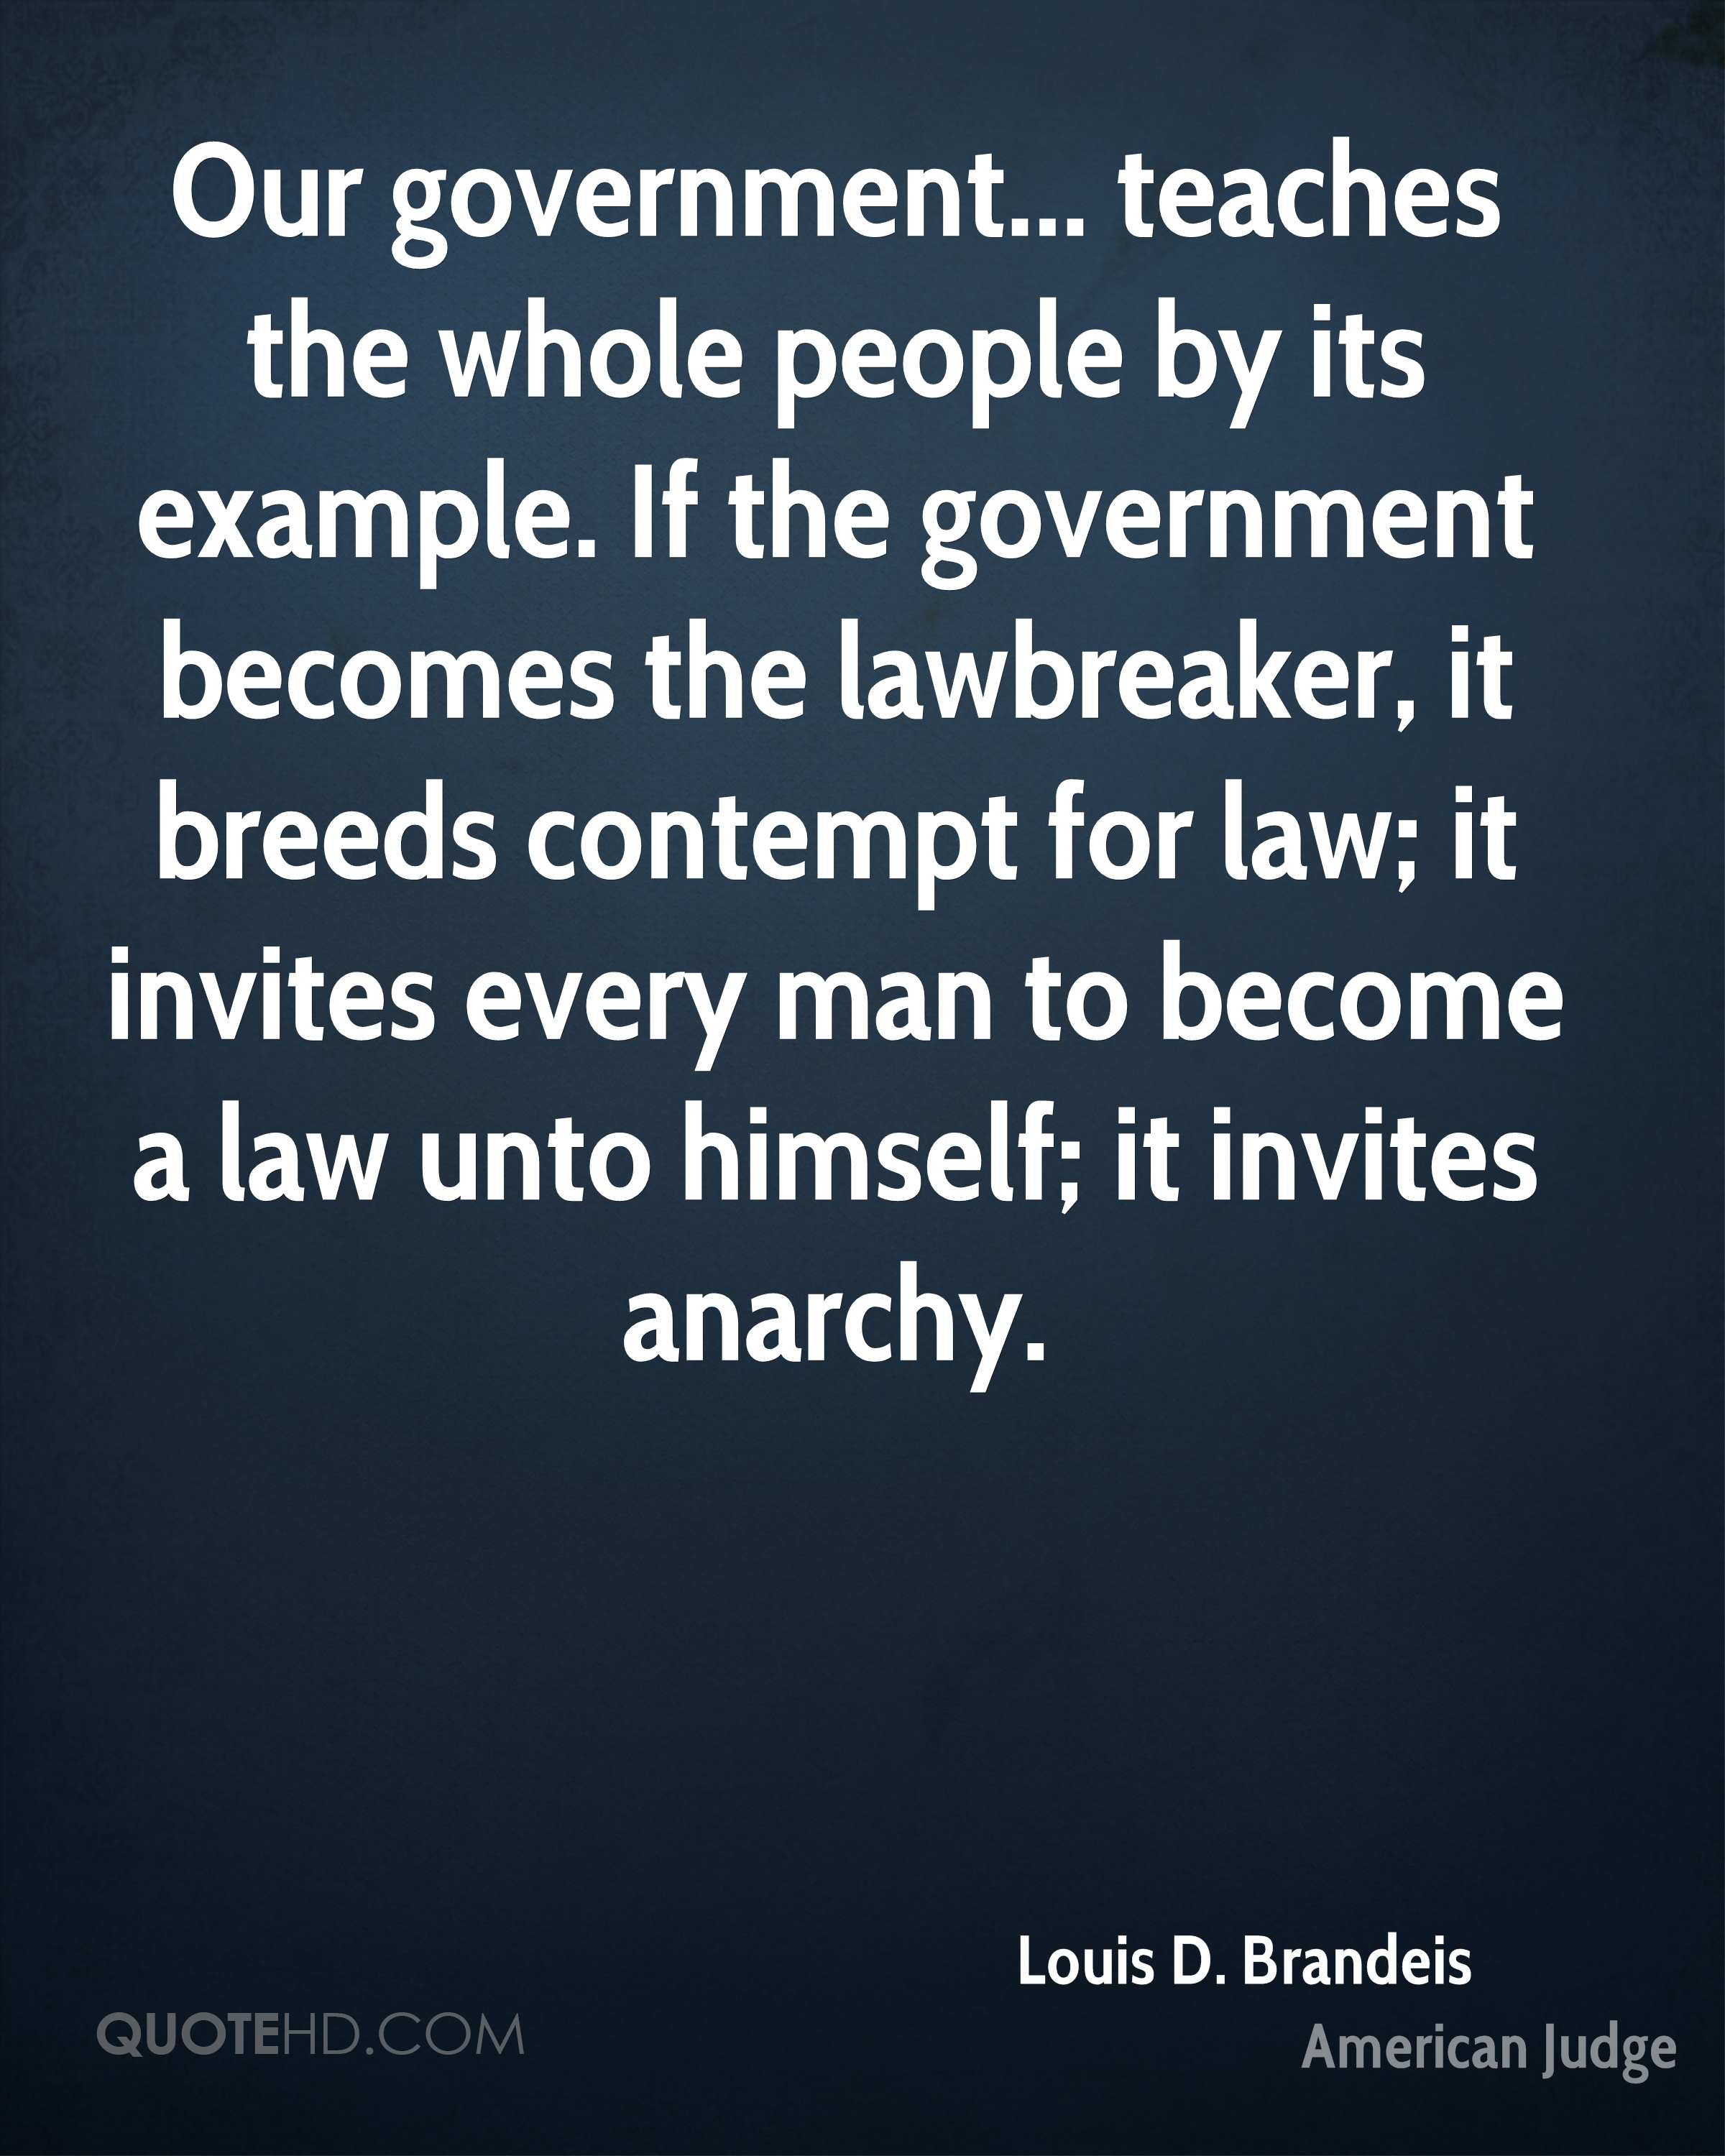 Our government... teaches the whole people by its example. If the government becomes the lawbreaker, it breeds contempt for law; it invites every man to become a law unto himself; it invites anarchy.